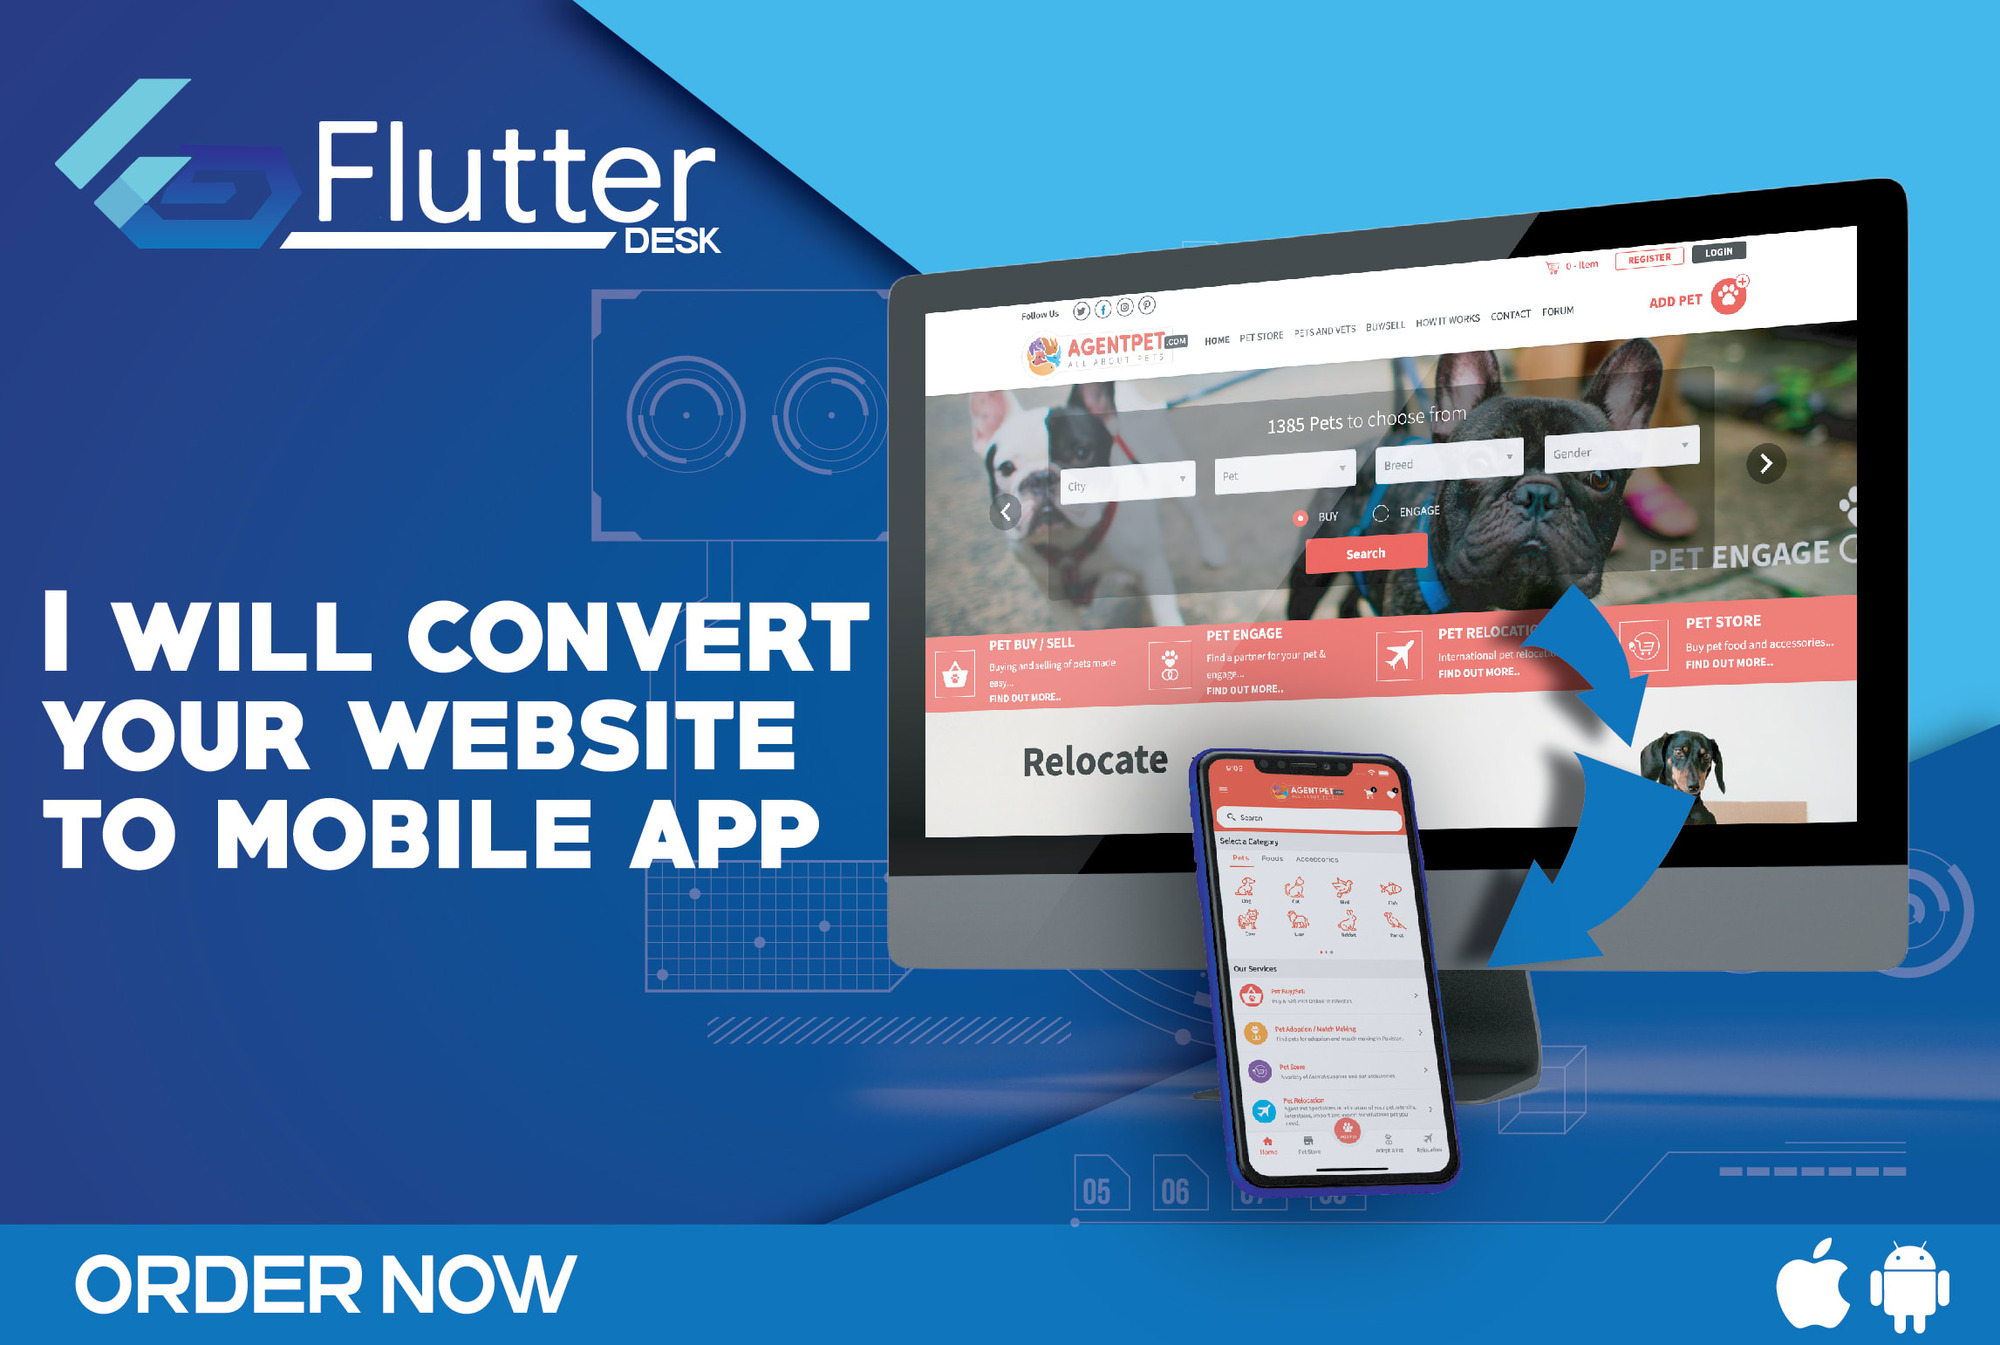 I will convert website to an Android mobile app with Flutter